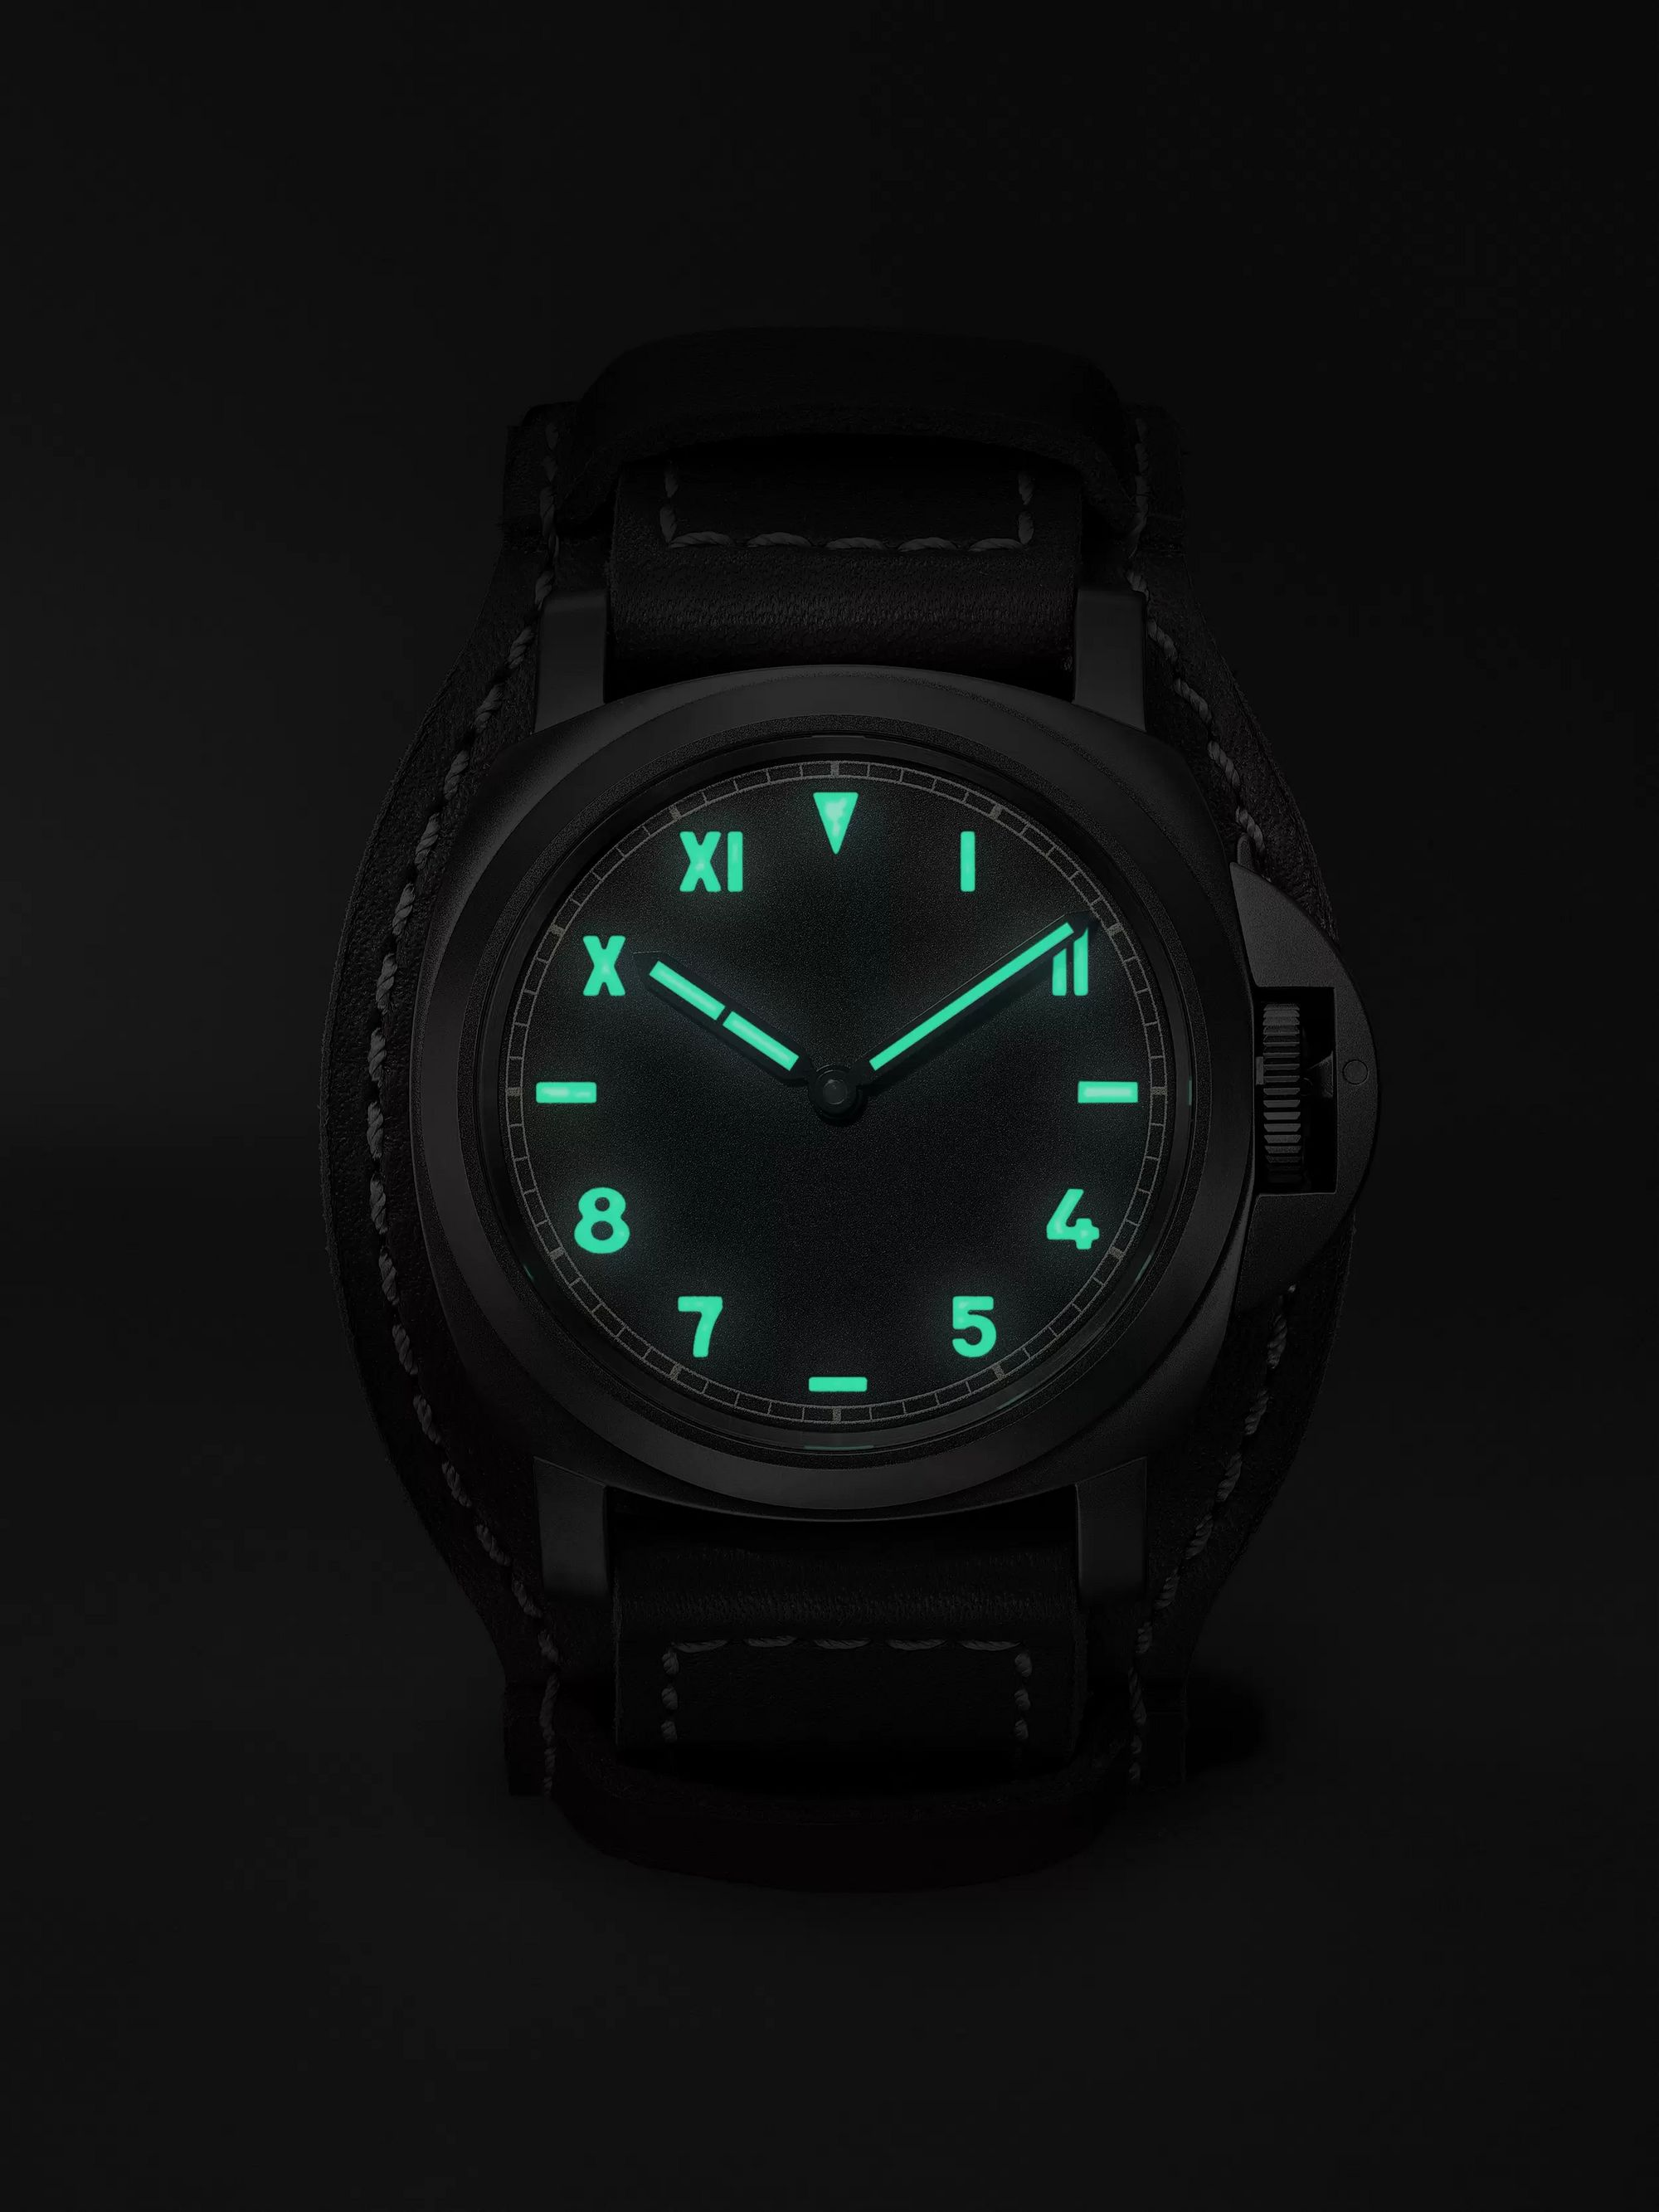 Panerai Luminor California 8 Days DLC Hand-Wound 44mm Titanium and Leather Watch